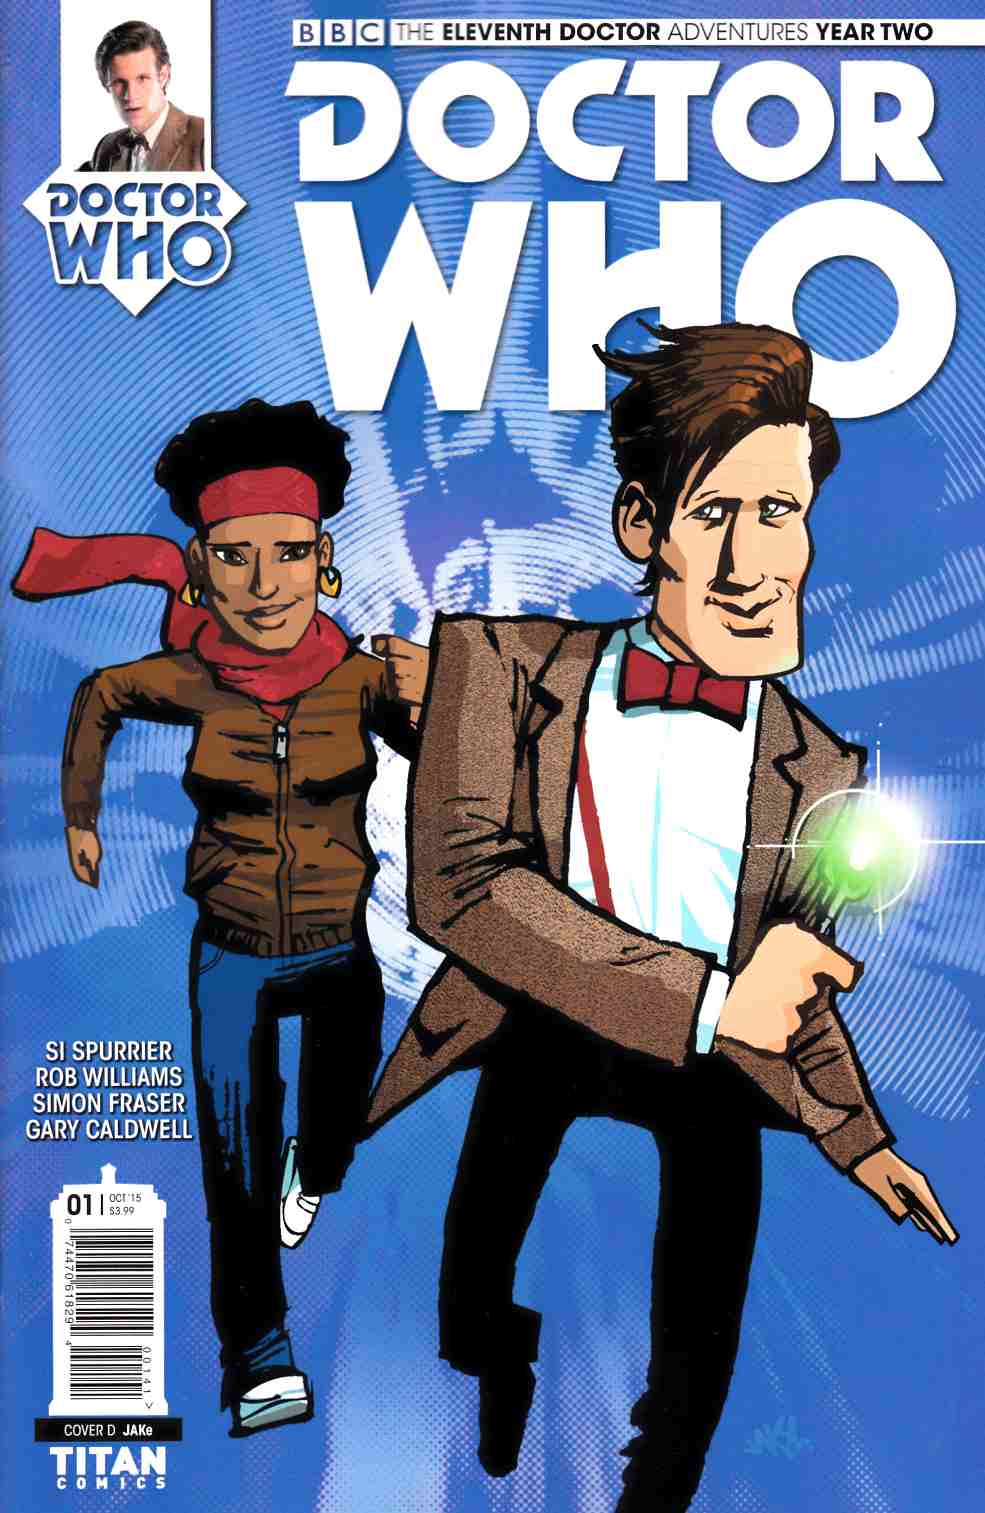 Doctor Who 11th Doctor Year 2 #1 Jake Variant Cover [Titan Comic]